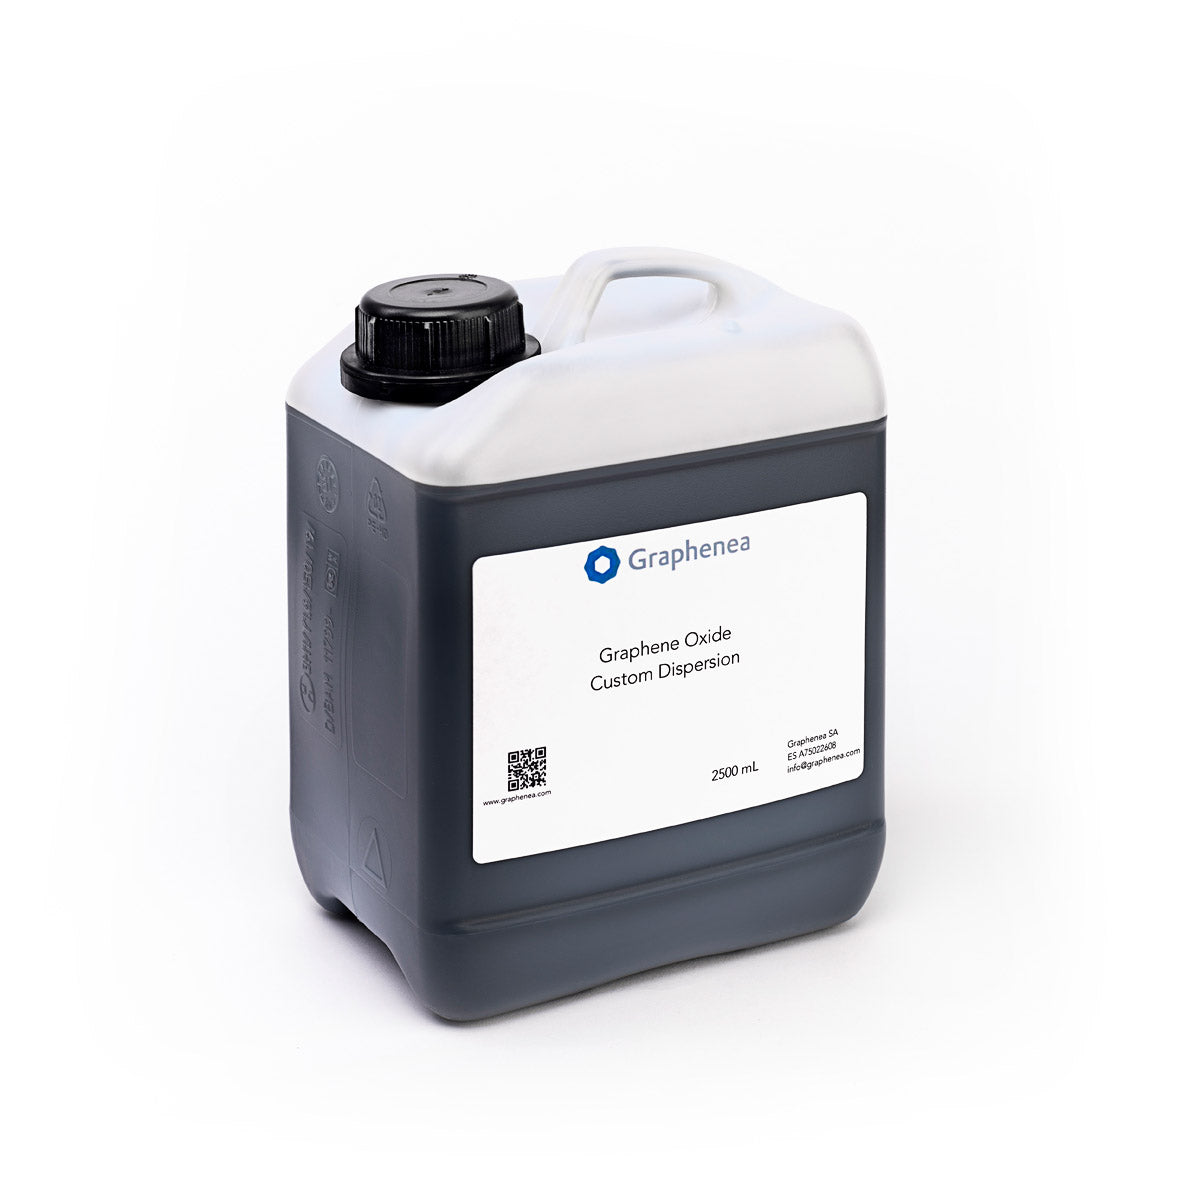 Custom Graphene Oxide Dispersion